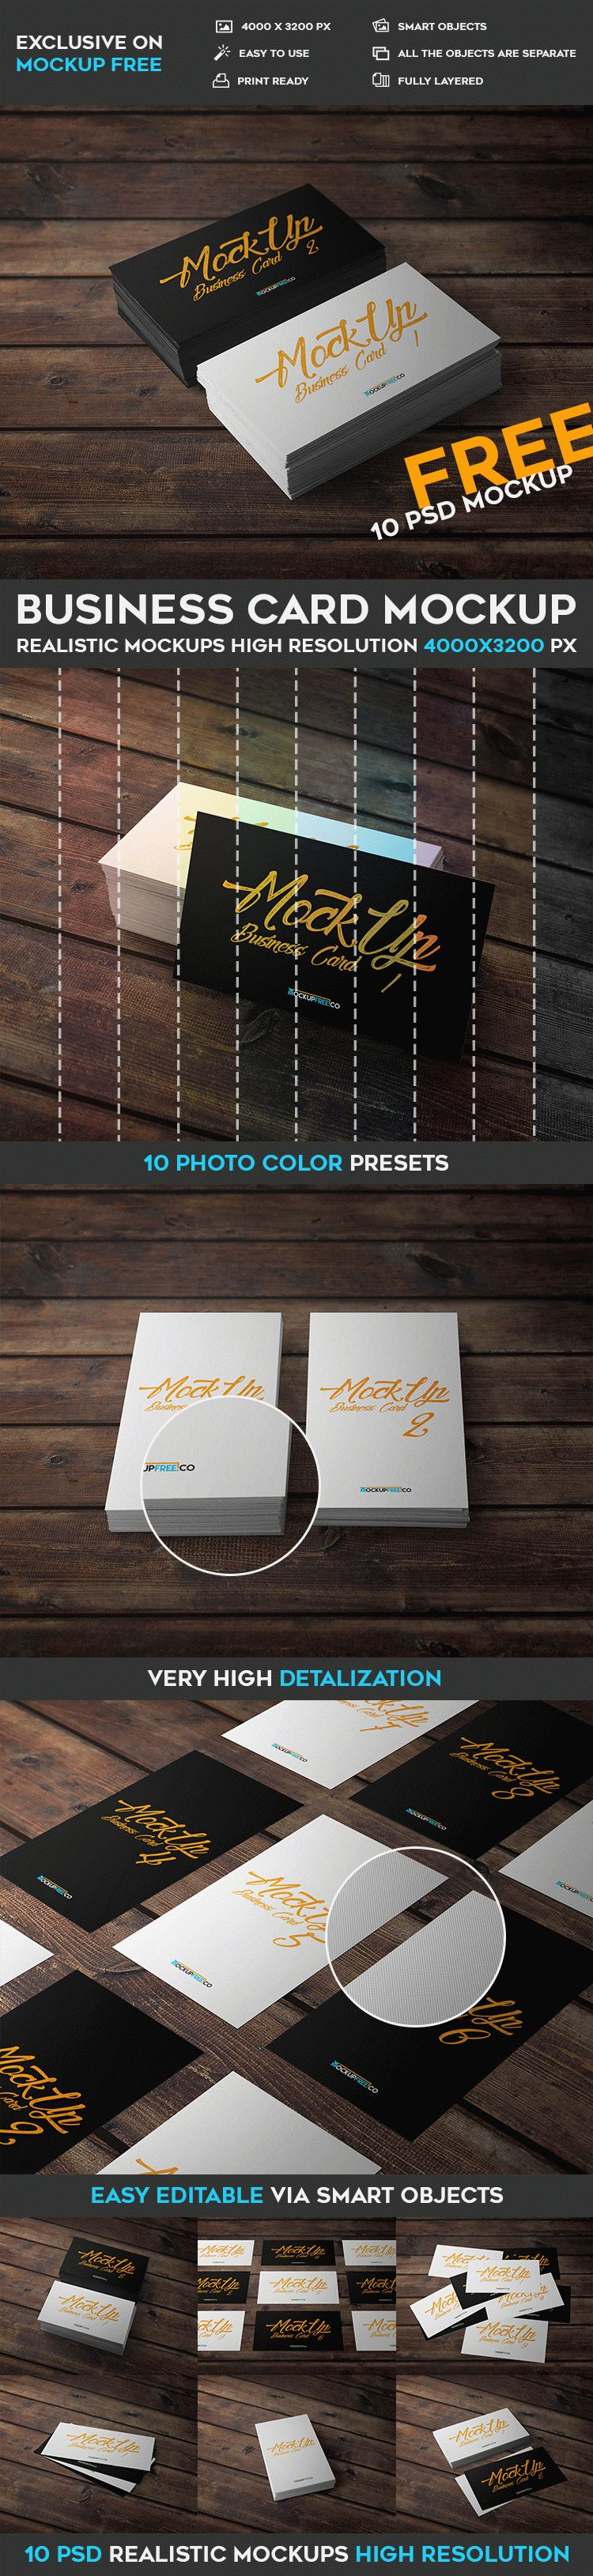 Business card 10 free psd mockups free psd templates the mock up is fully layered and well organized you are free to download this psd mockup template and modify it the way you wish reheart Images